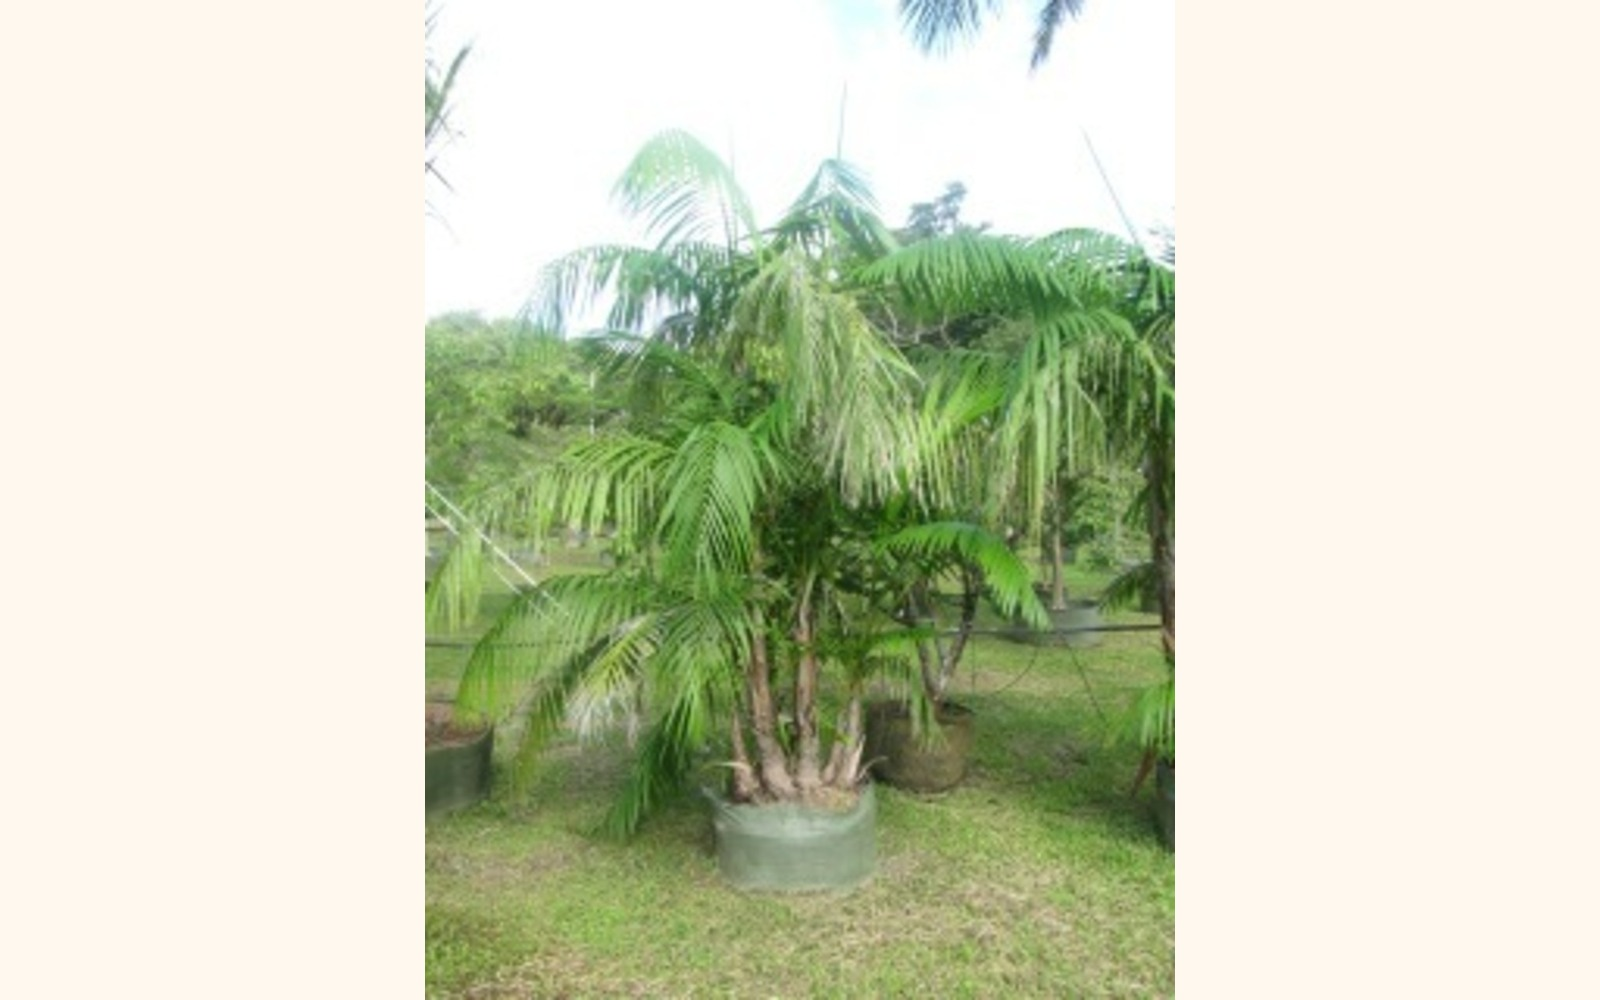 Dypsis Lutescens Wikipedia Cocobolo Tree Farm Multiplex Bamboo Palm Butterfly